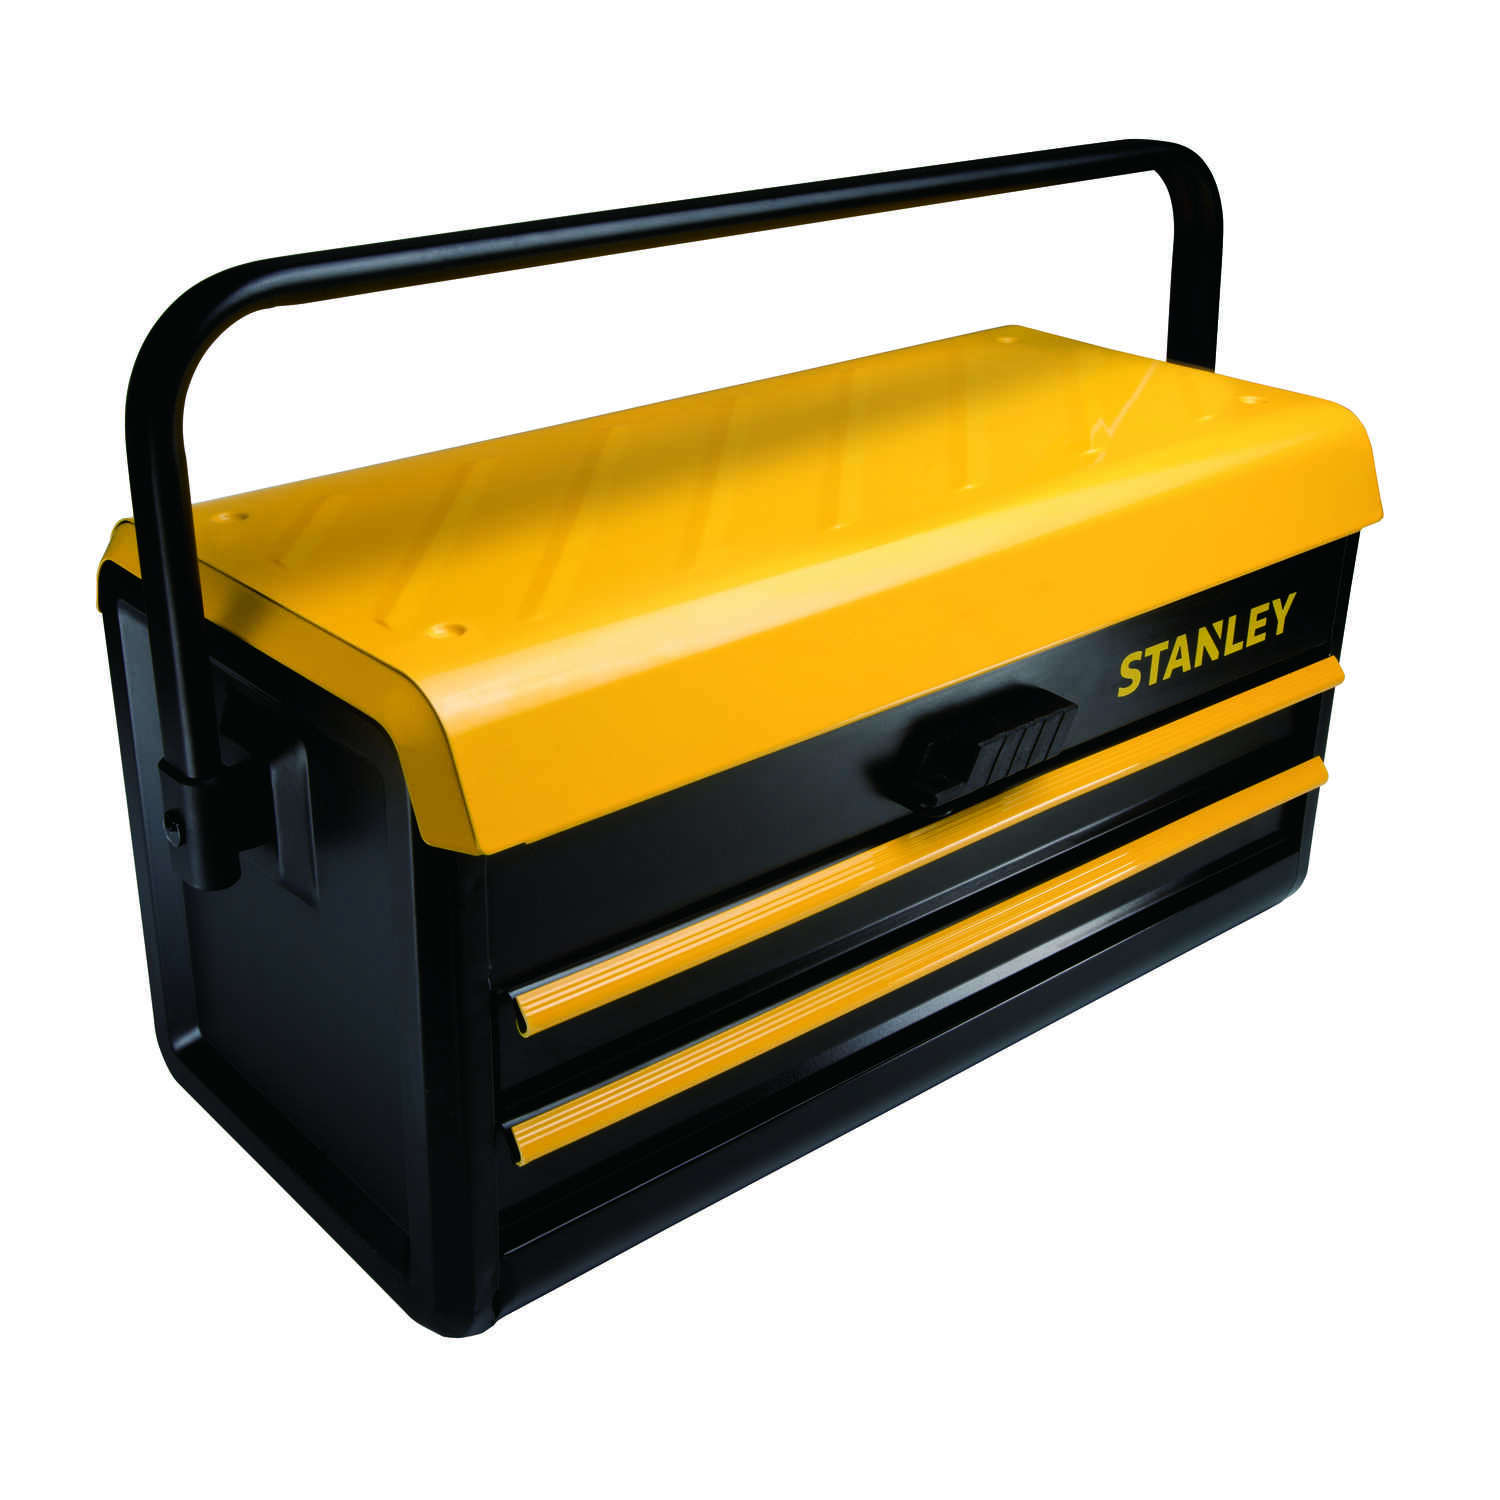 Stanley  11 in. W x 12 in. H 21 in. Tool Box  Black  Metal